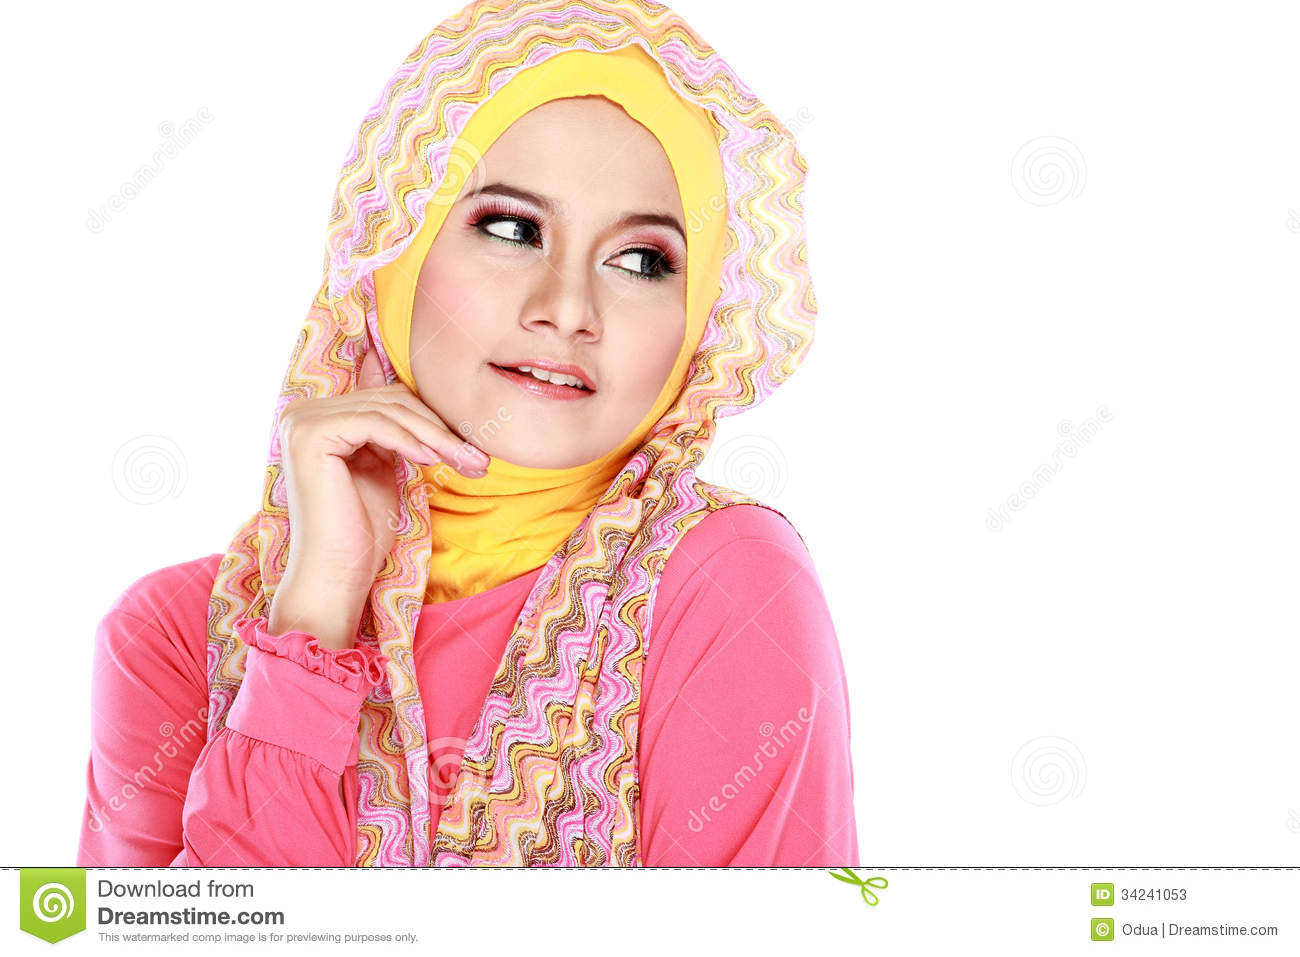 http://thumbs.dreamstime.com/z/portrait-beautiful-woman-wearing-hijab-fashion-young-muslim-pink-costume-isolated-white-background-34241053.jpg